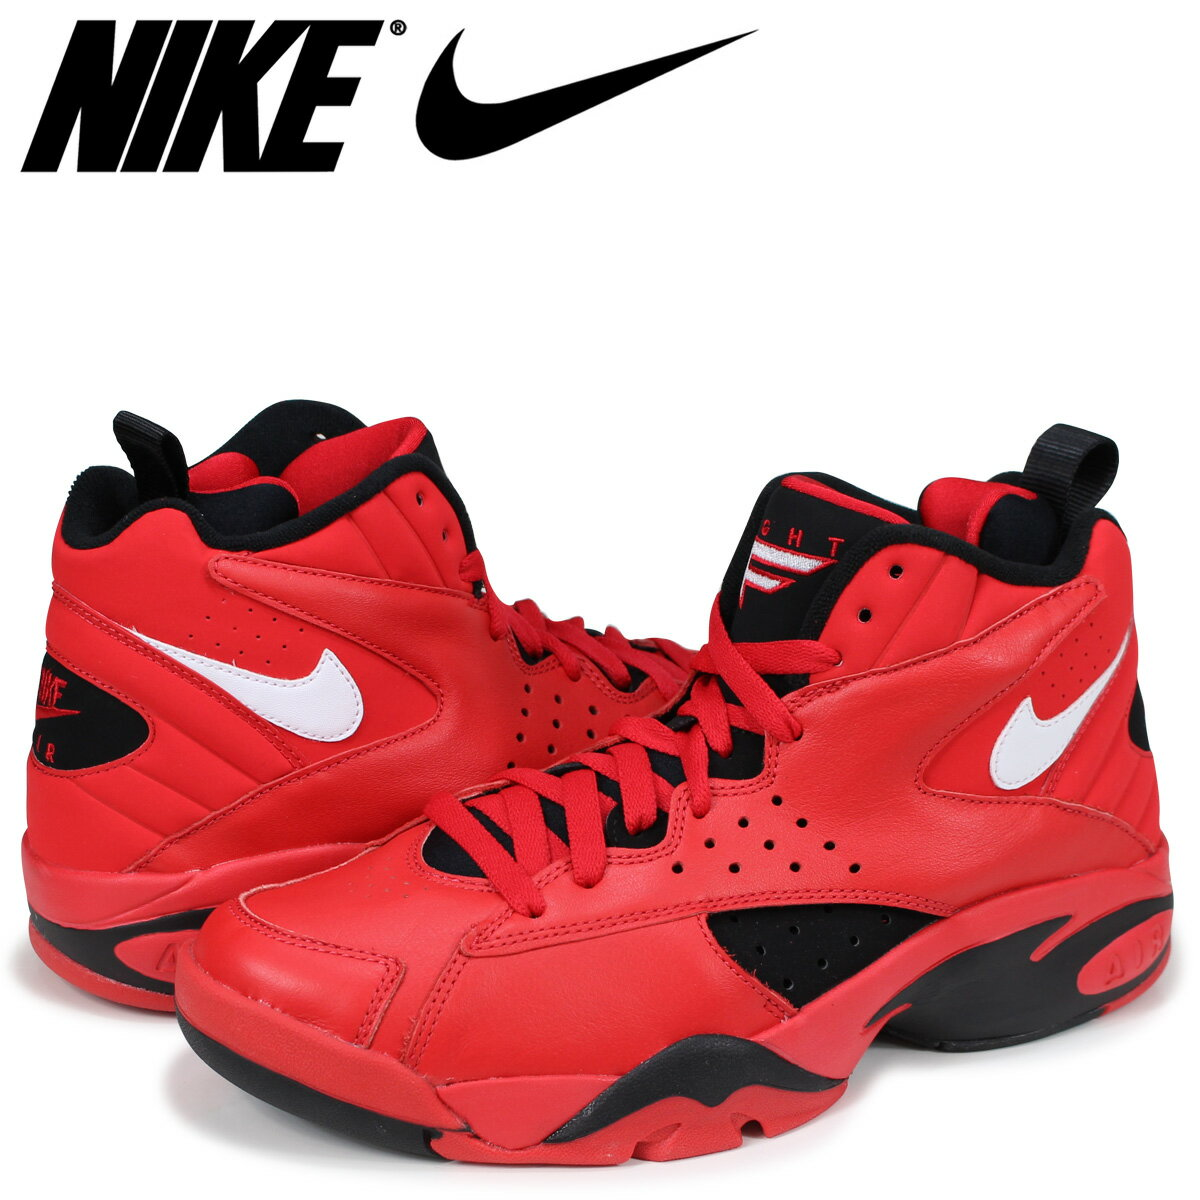 new concept 704c8 8e2ac NIKE AIR MAESTRO II TRIFECTA Nike air maestro 2 sneakers men red AJ9281-600